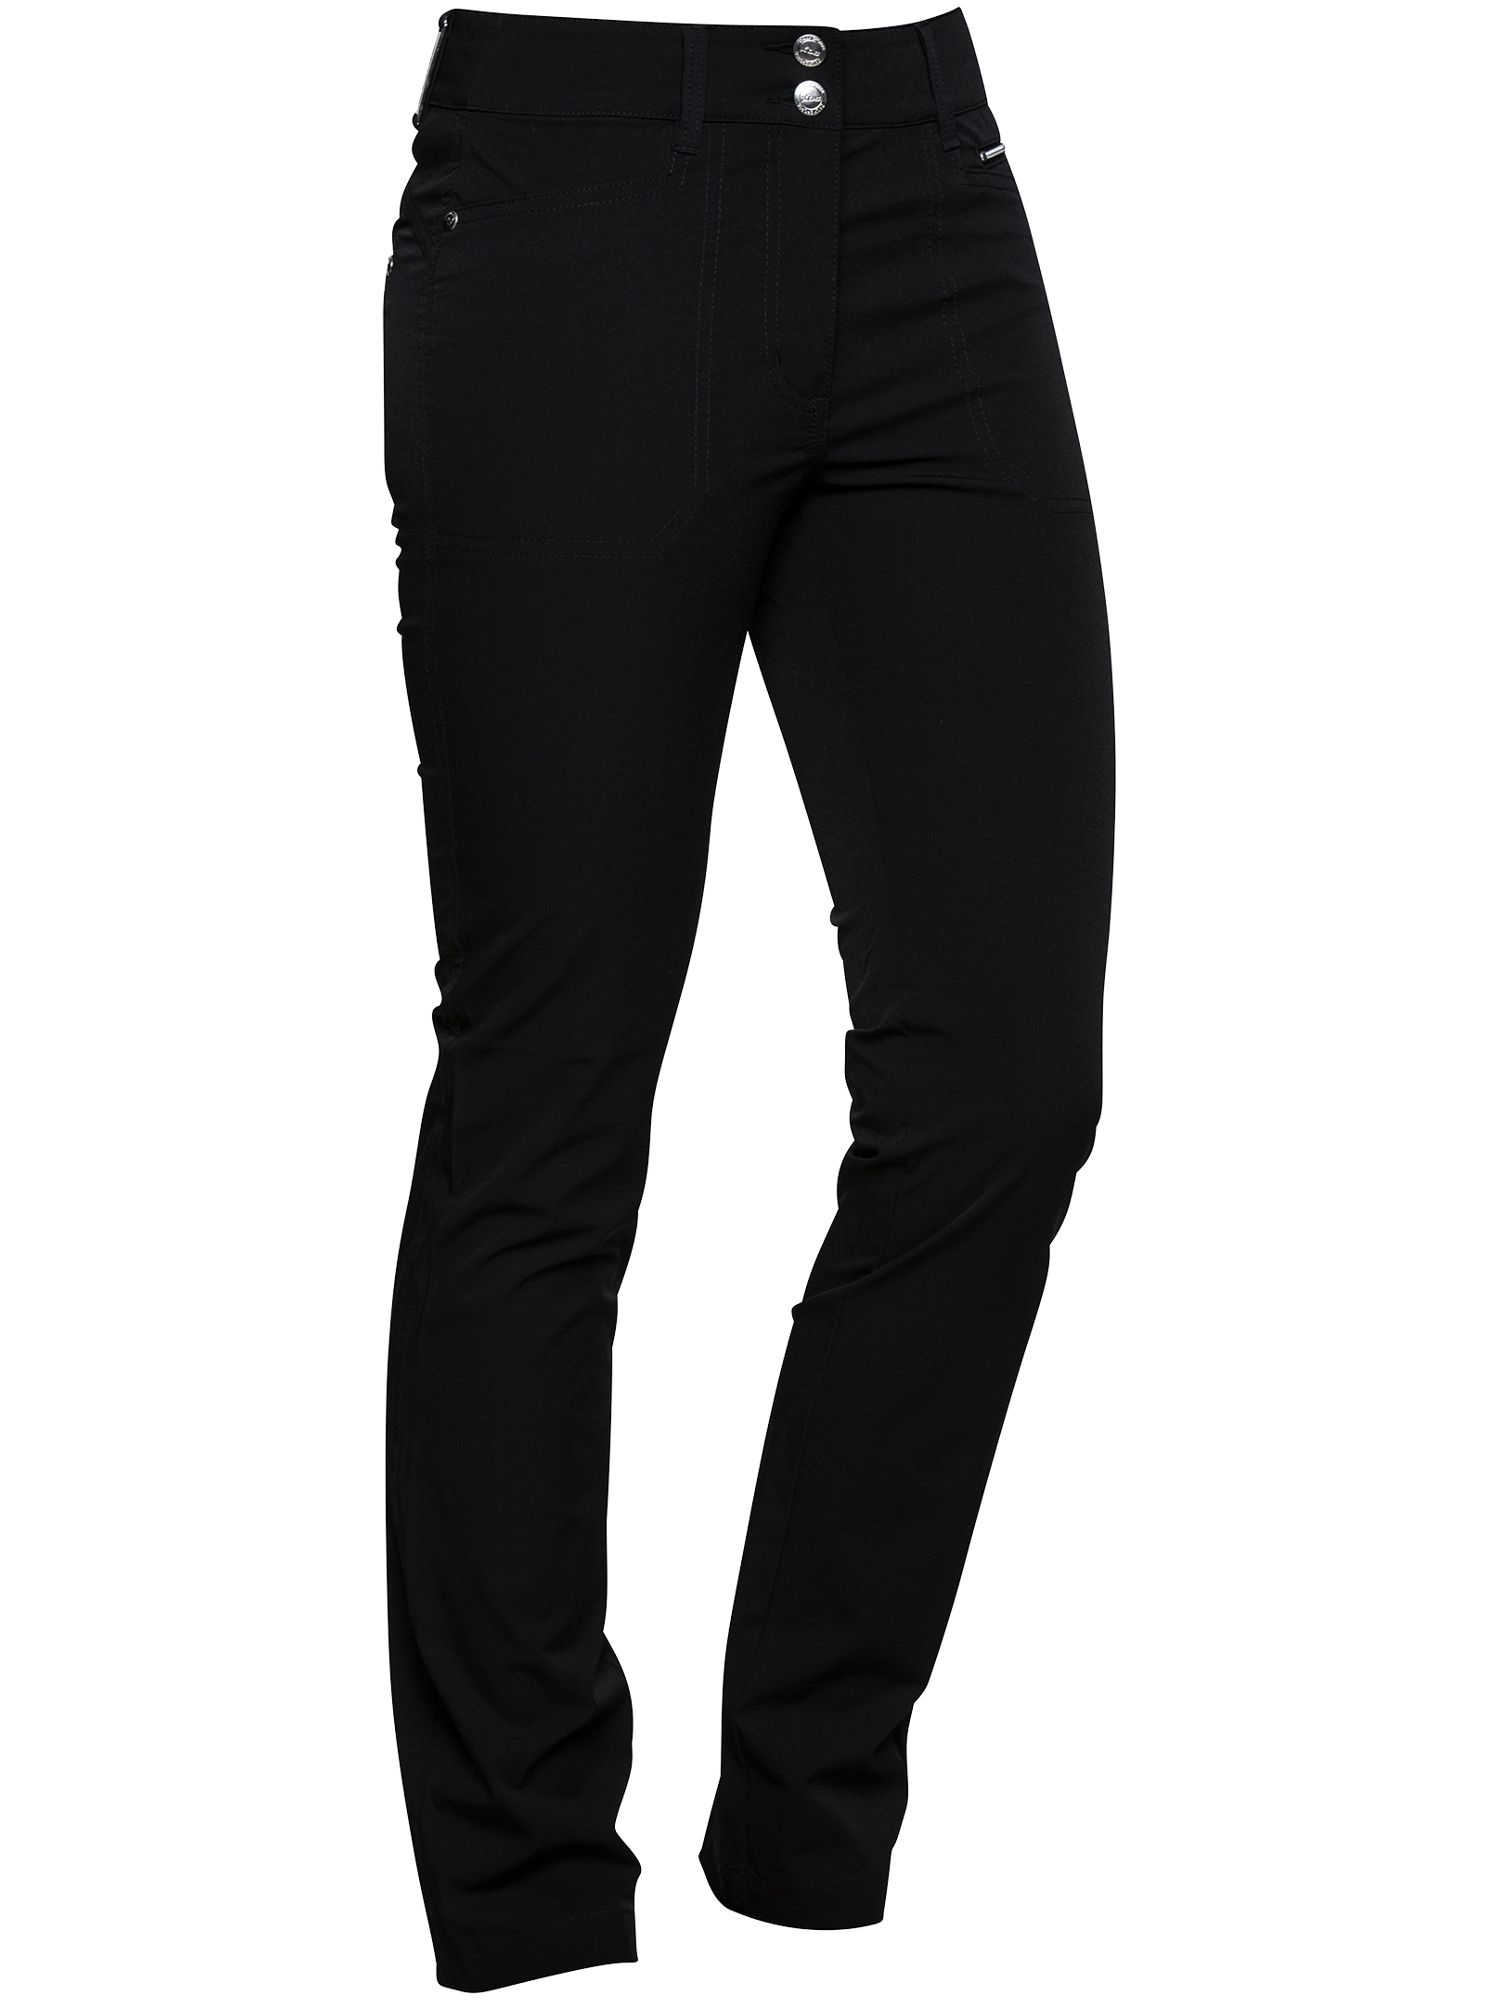 Daily Sports Daily Sports Miracle trousers, Black